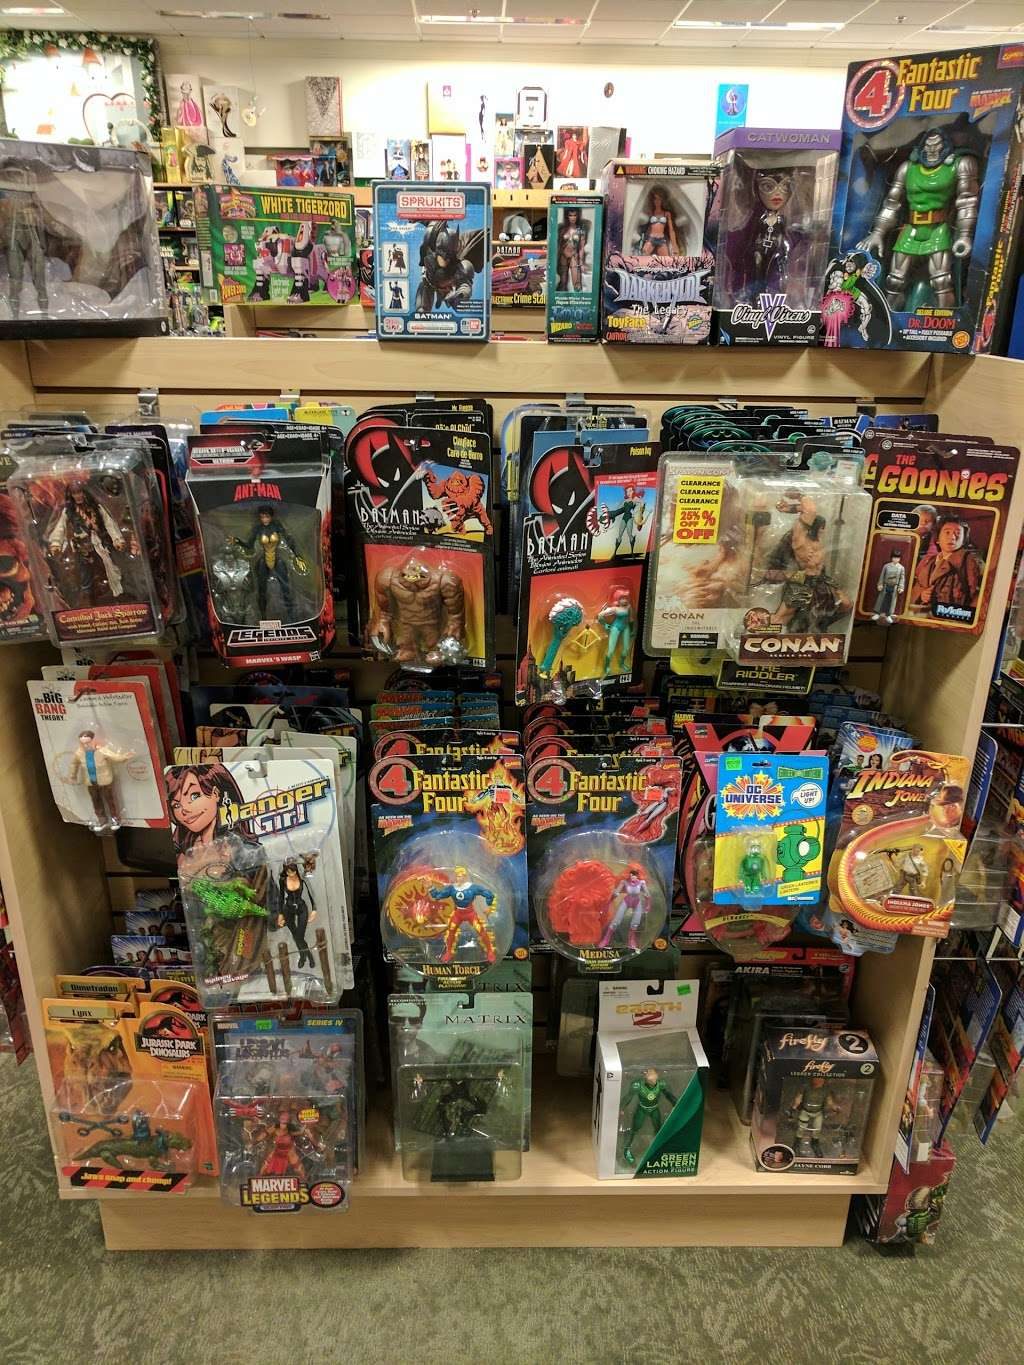 Dream World Collectibles - art gallery    Photo 10 of 10   Address: 1555 Simi Town Center Way #165, Simi Valley, CA 93065, USA   Phone: (805) 581-0409